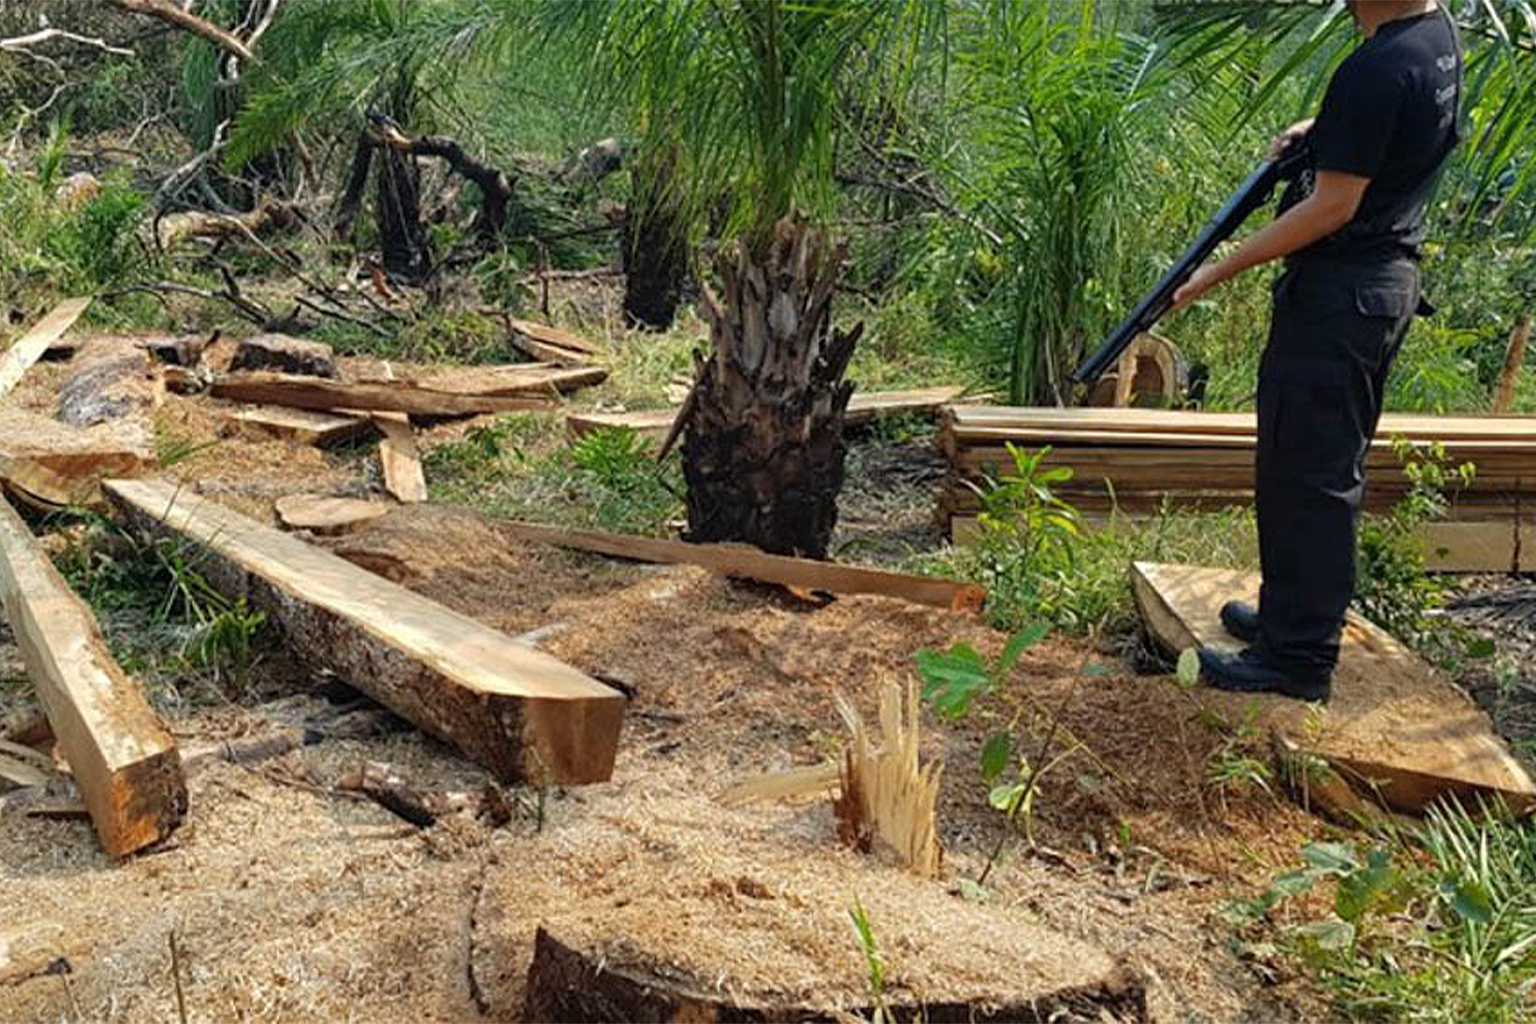 Federal police, Funai and Ibama carry out a joint operation in 2019 to curb illegal deforestation in the Kadiwéu Indigenous Land in Mato Grosso do Sul.